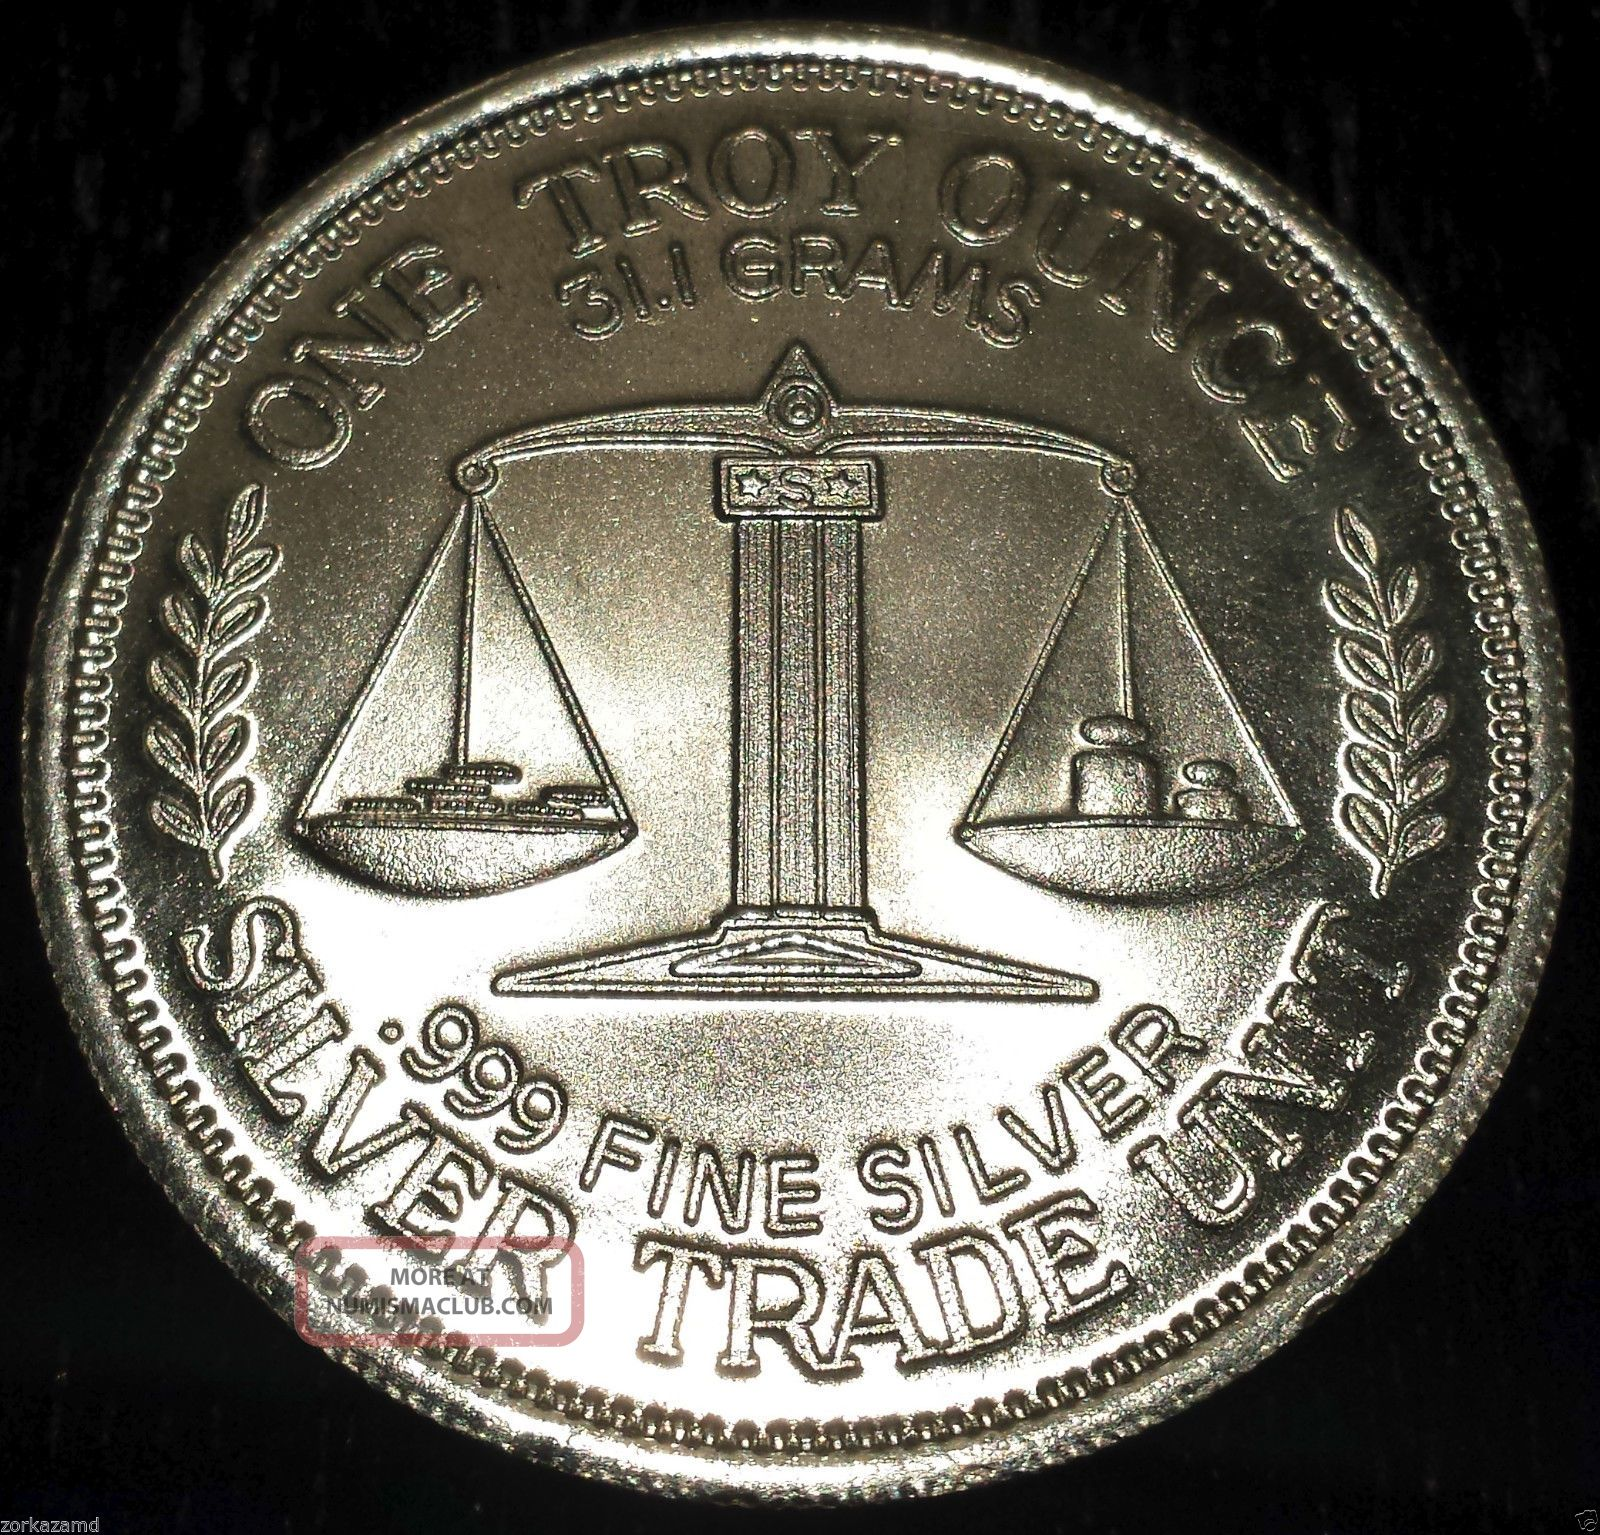 1985 Morgan 1 Troy Oz 999 Fine Silver Trade Unit Wtu26